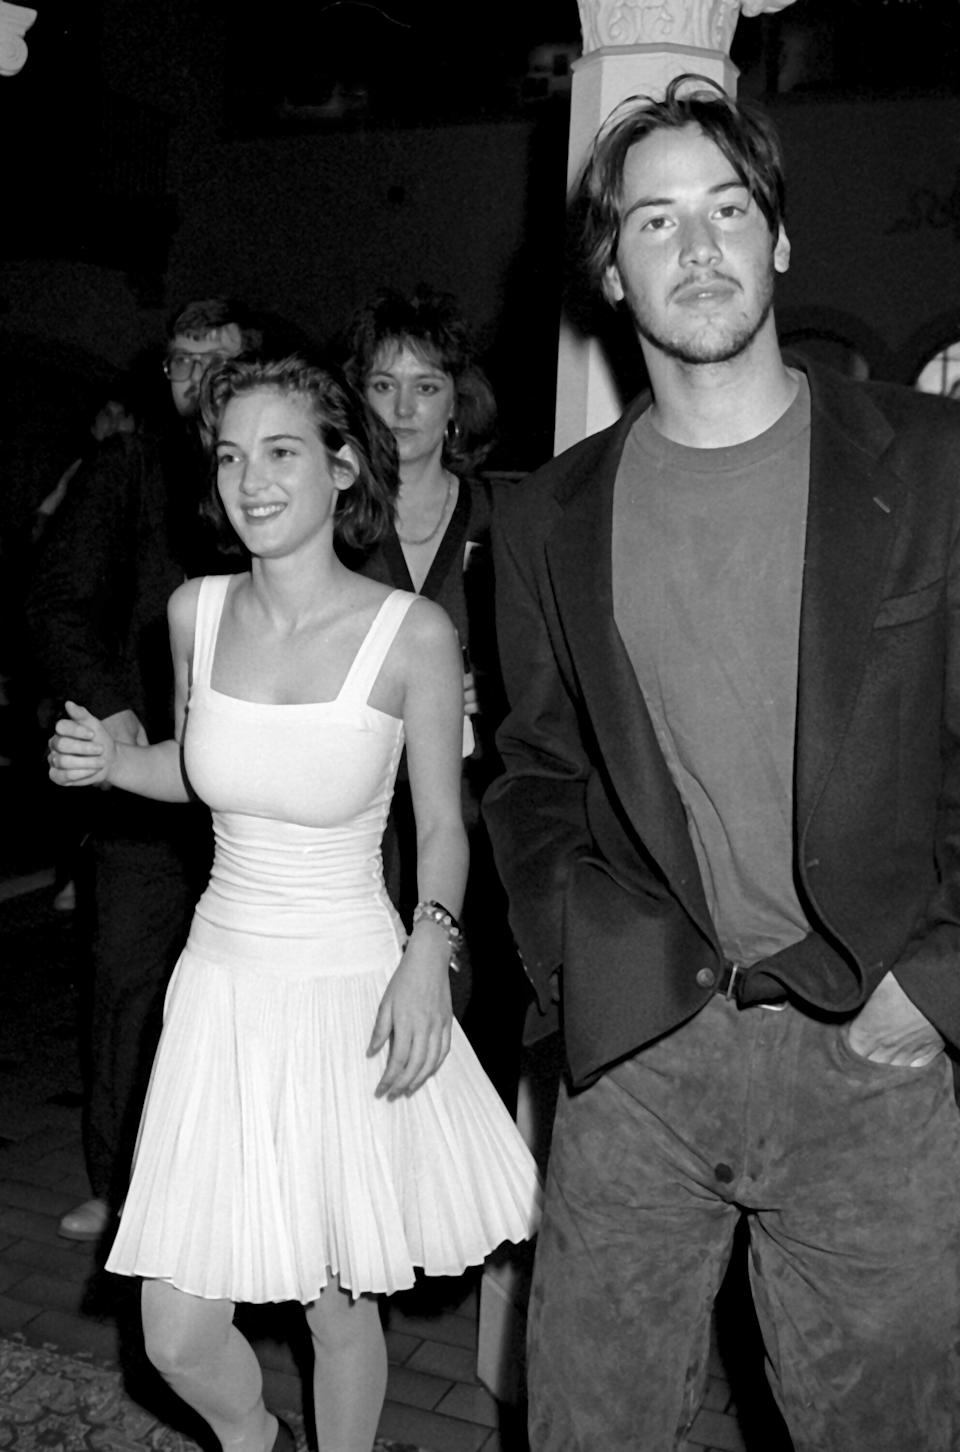 Winona Ryder and Reeves attend an event at the Hollywood Roosevelt Hotel.